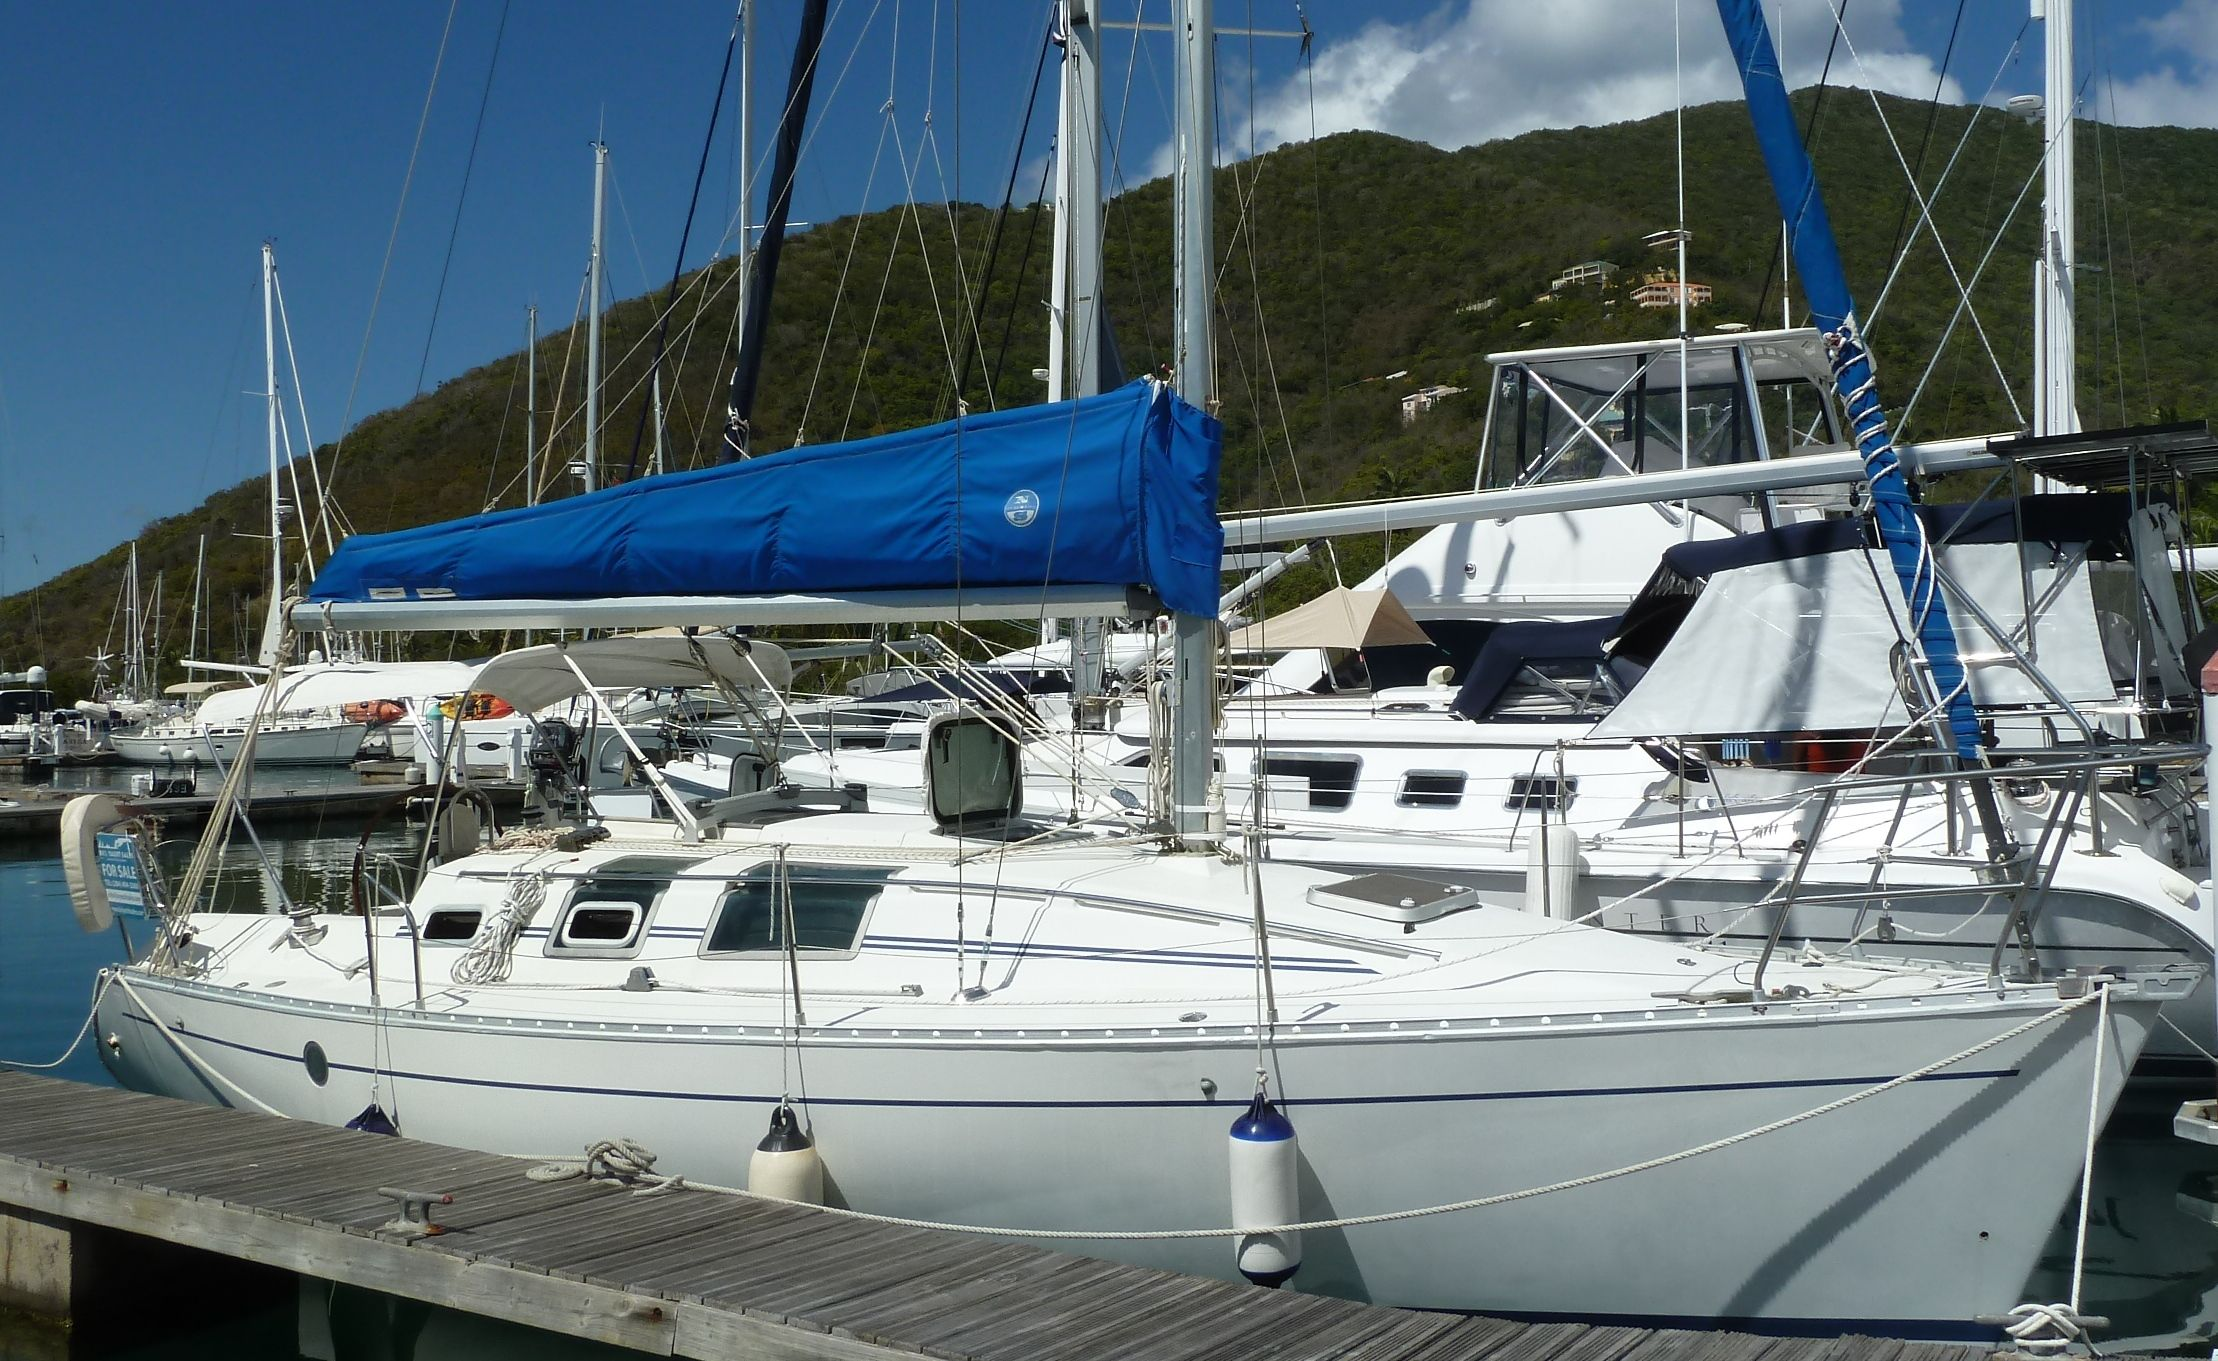 32' Beneteau First 32s5, 1990 Asking $29,950 chris@bviyachtsales.com True performance combined with ease of handling and a comfortable interior are the hallmarks of the Beneteau First 32s5. A clean deck layout, uncomplicated sail plan and a fast hull designed by Jean Berret make sailing her a joyous experience. Island Hopper is a unique offering, having been in private use for over a decade now she has been more heavily upgraded than any other boat of this size.